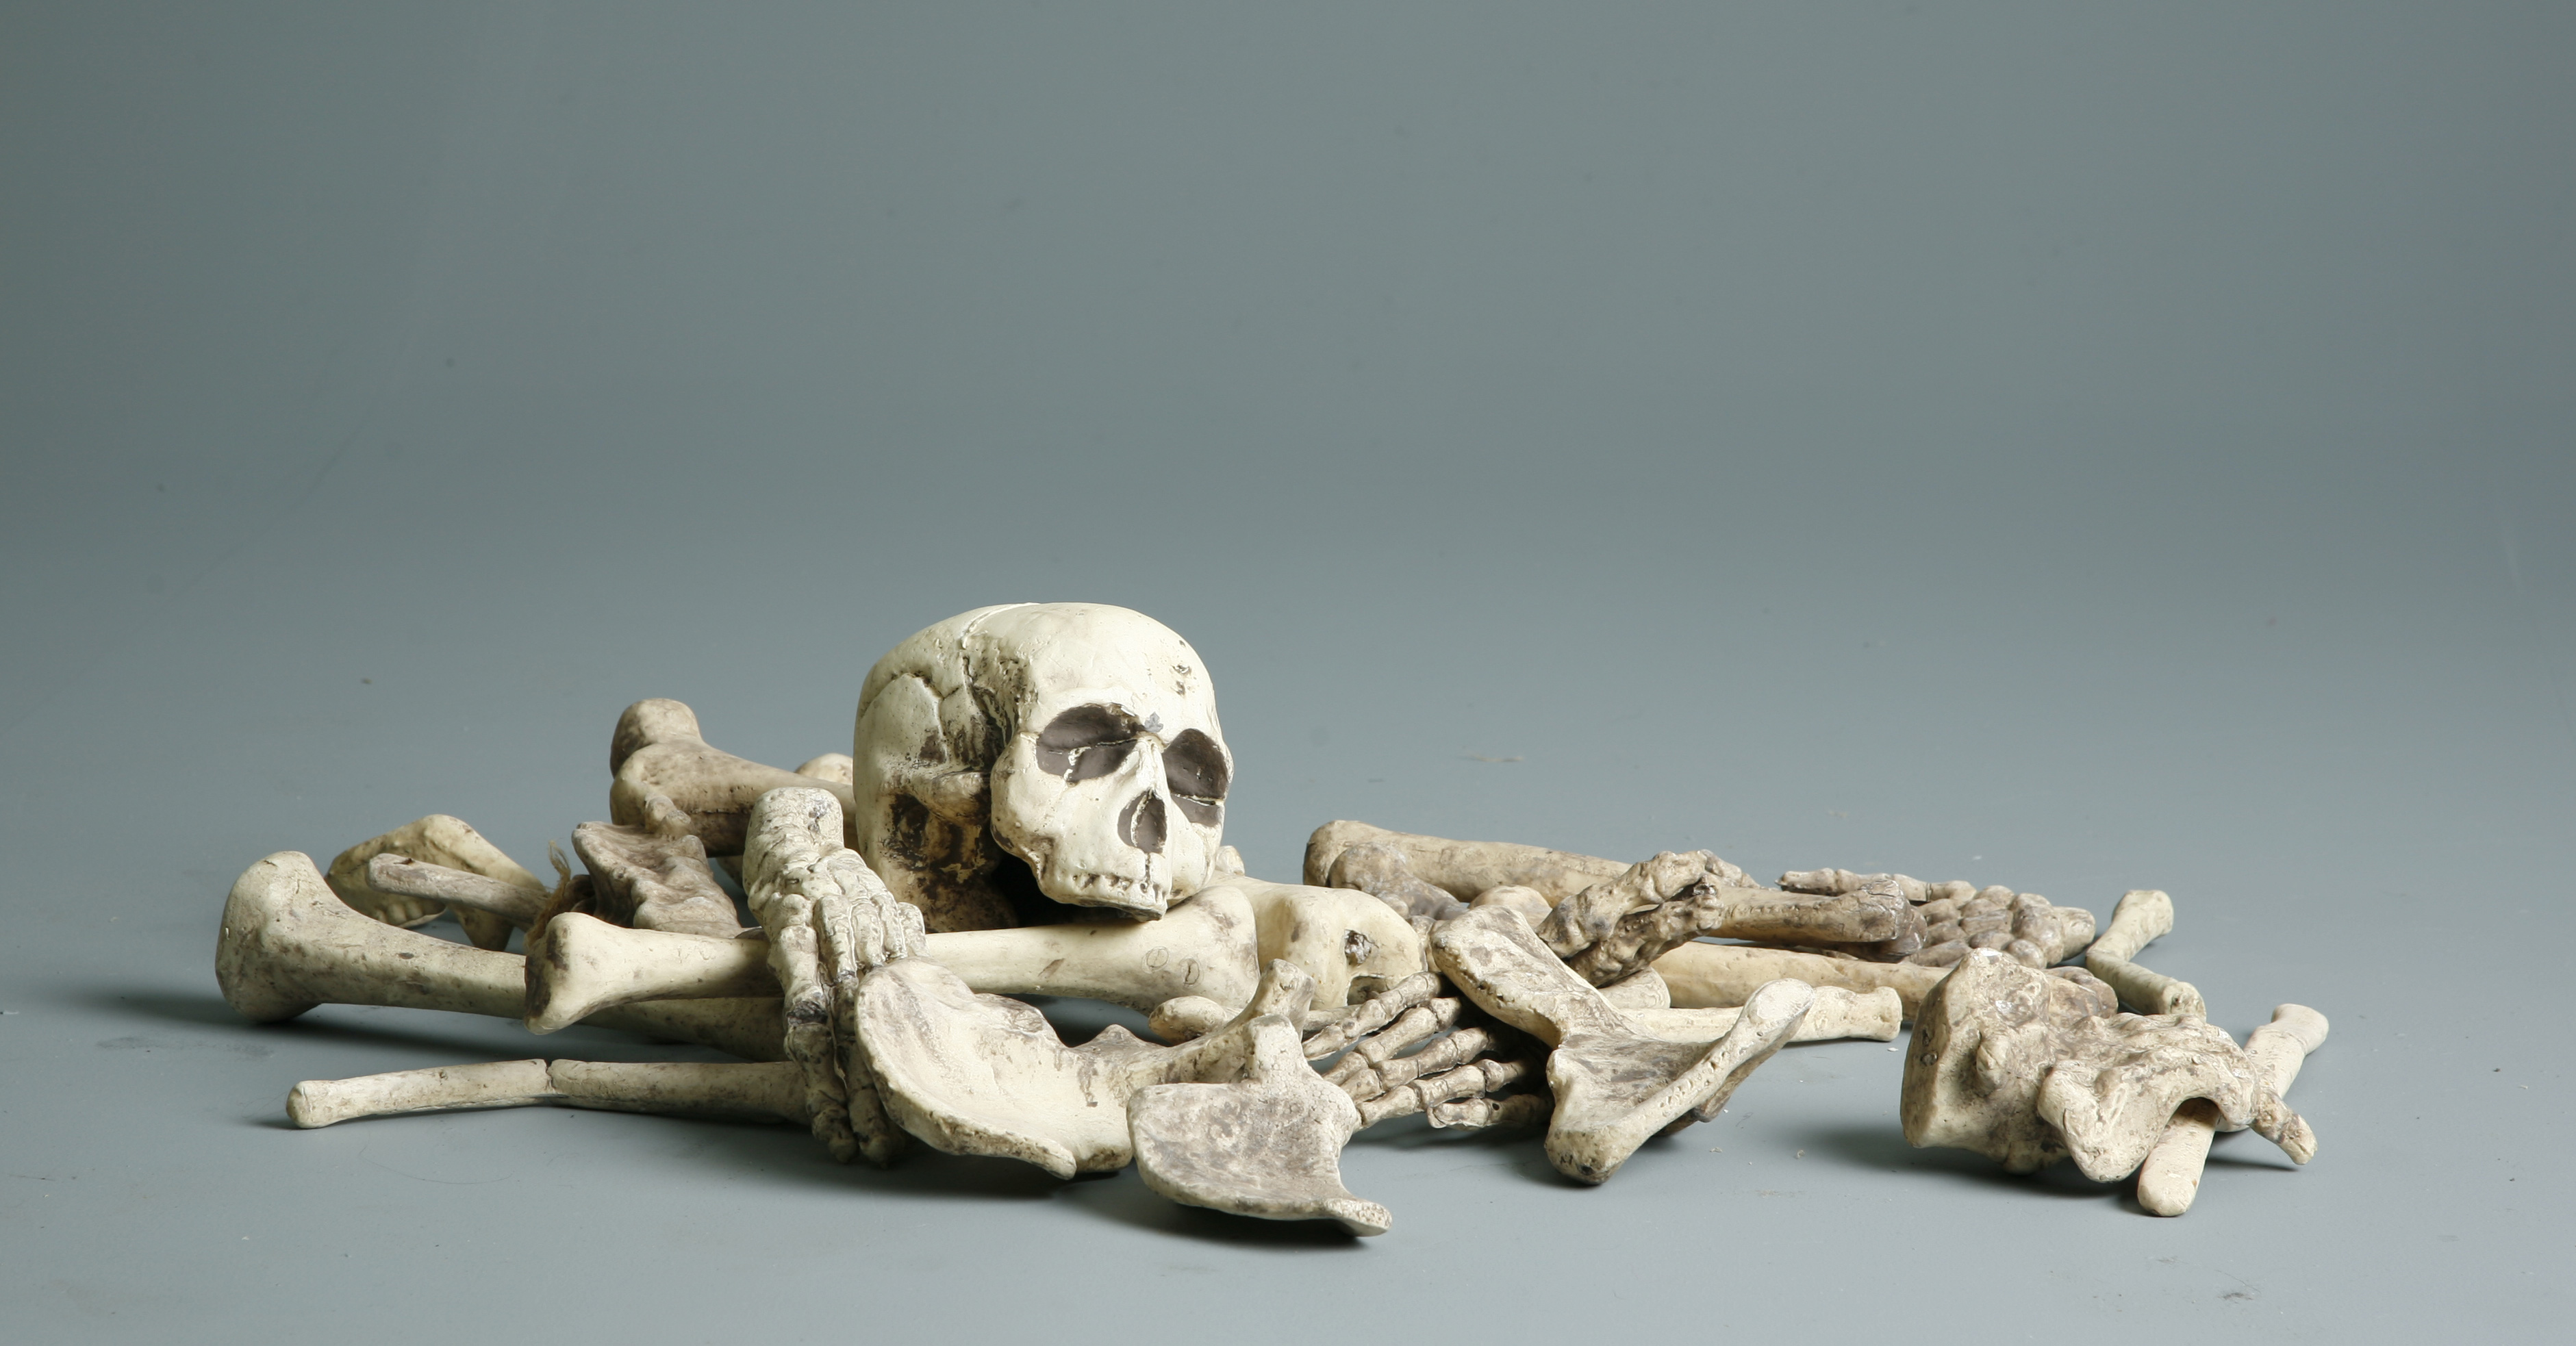 Stock Photo Bones by mjranum stock